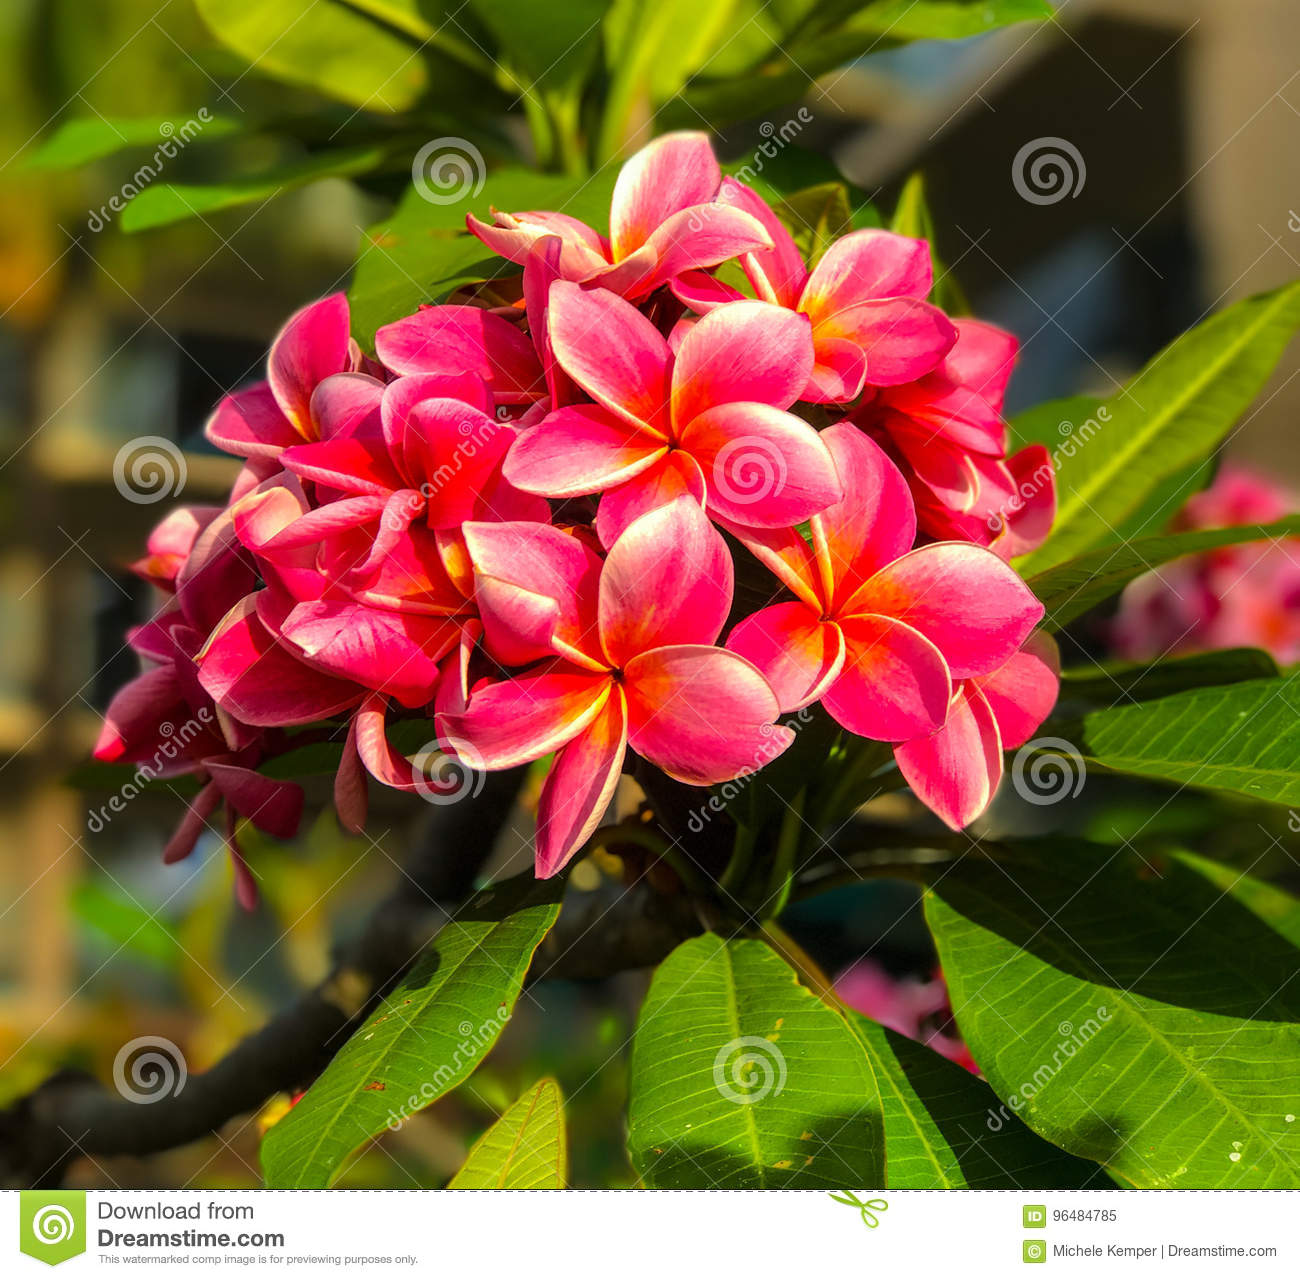 Plumeria five petal blooms stock image image of flower 96484785 trees famous for their gorgeous flowers which are used to make leis and floral garlands other common names are frangipani and hawaiian lei flower izmirmasajfo